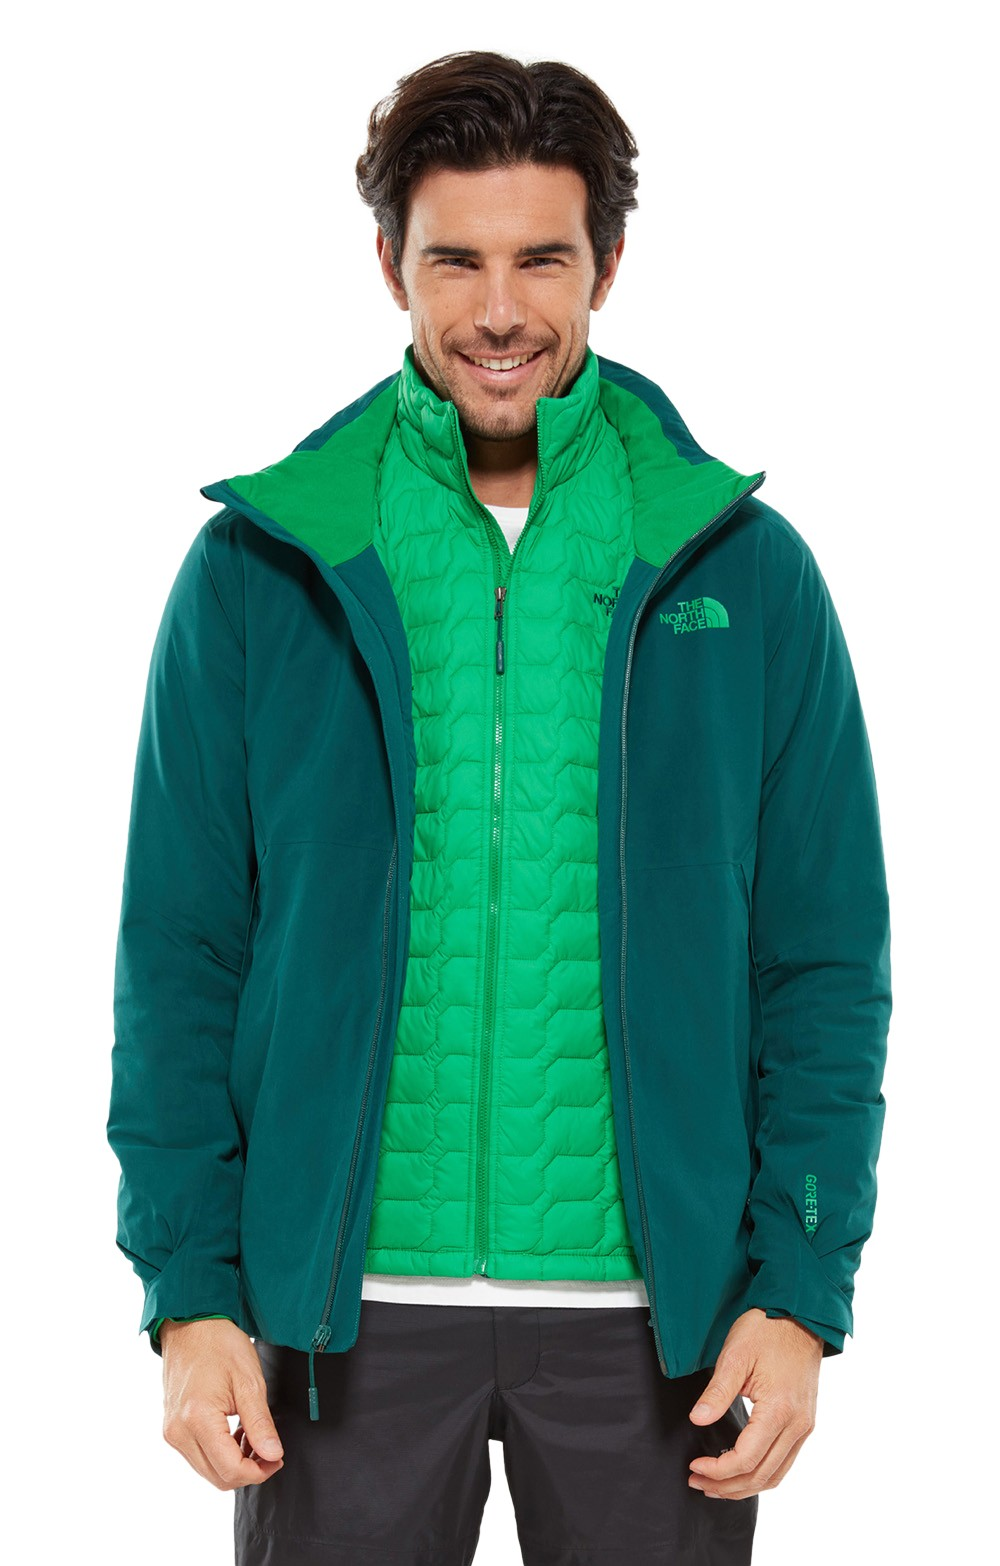 ebd45376b2f Mens The North Face Thermoball Jacket - House of Bruar